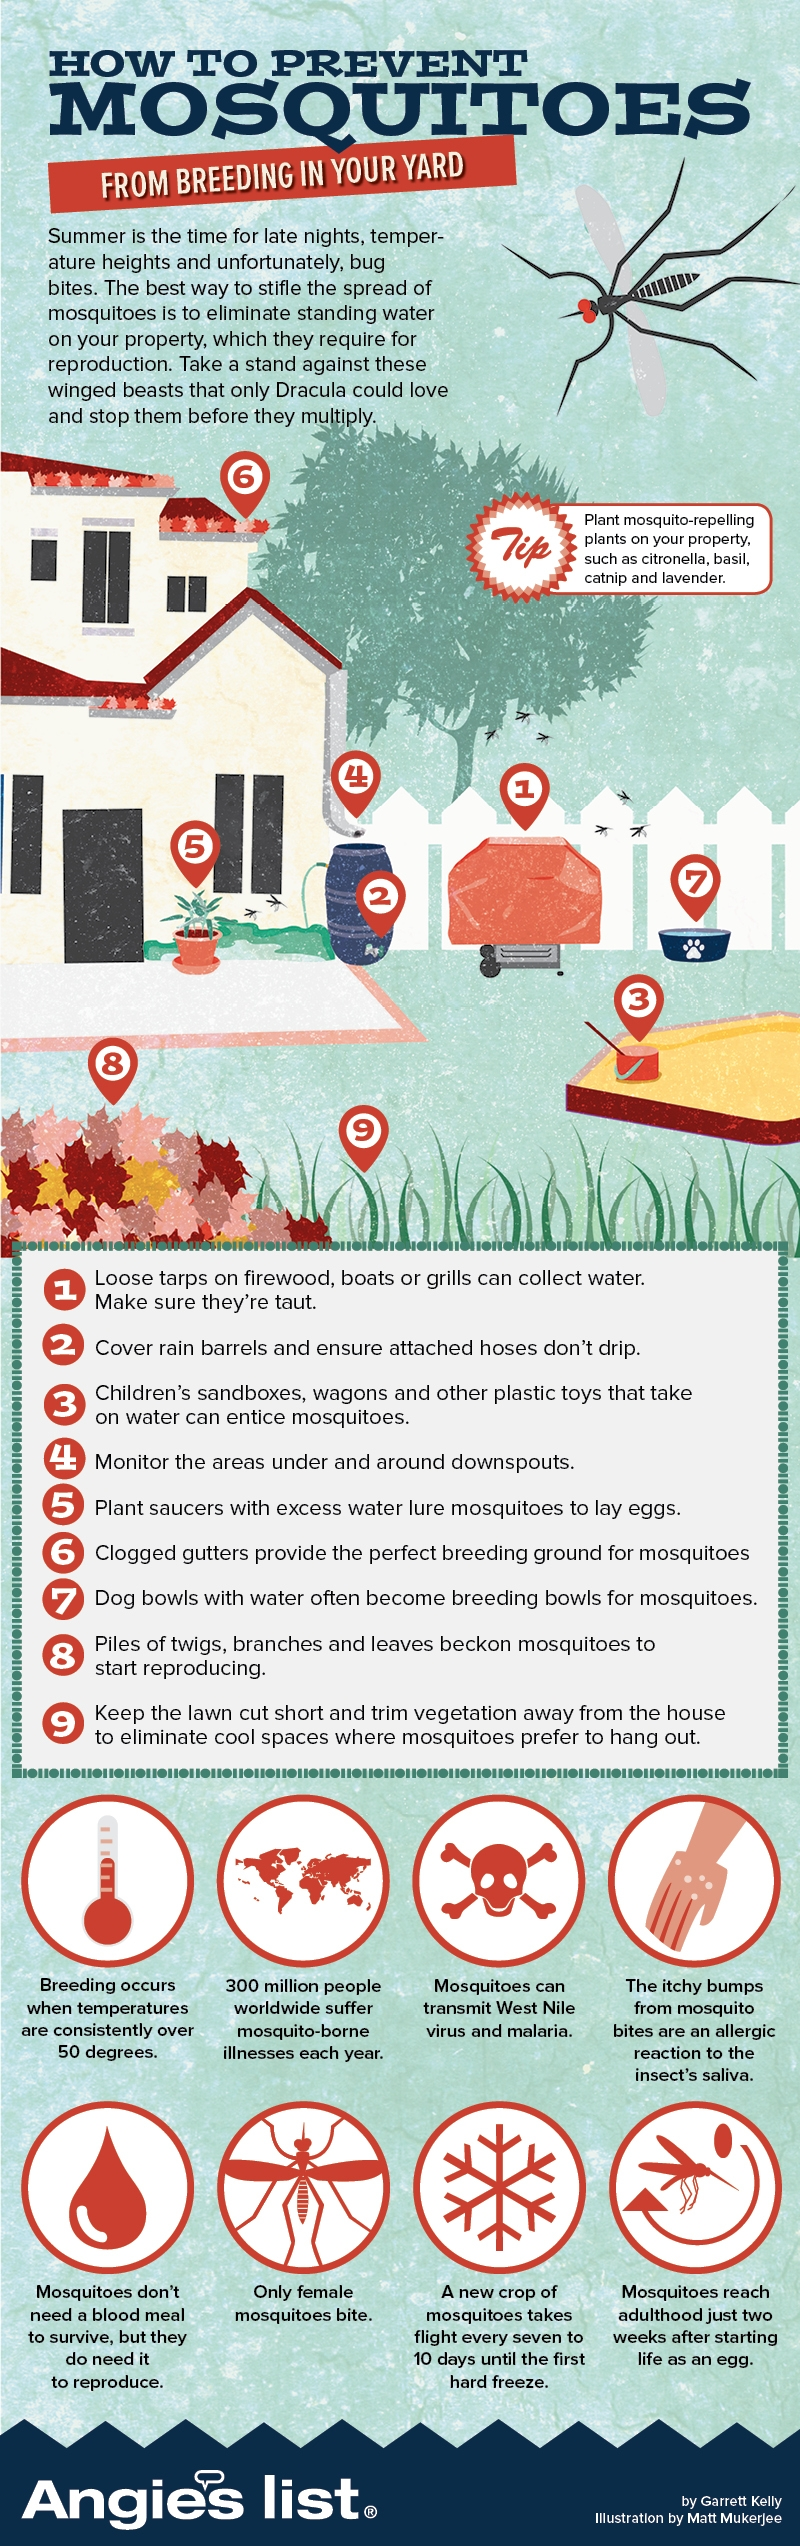 How To Prevent Mosquitoes From Breeding in Your Yard